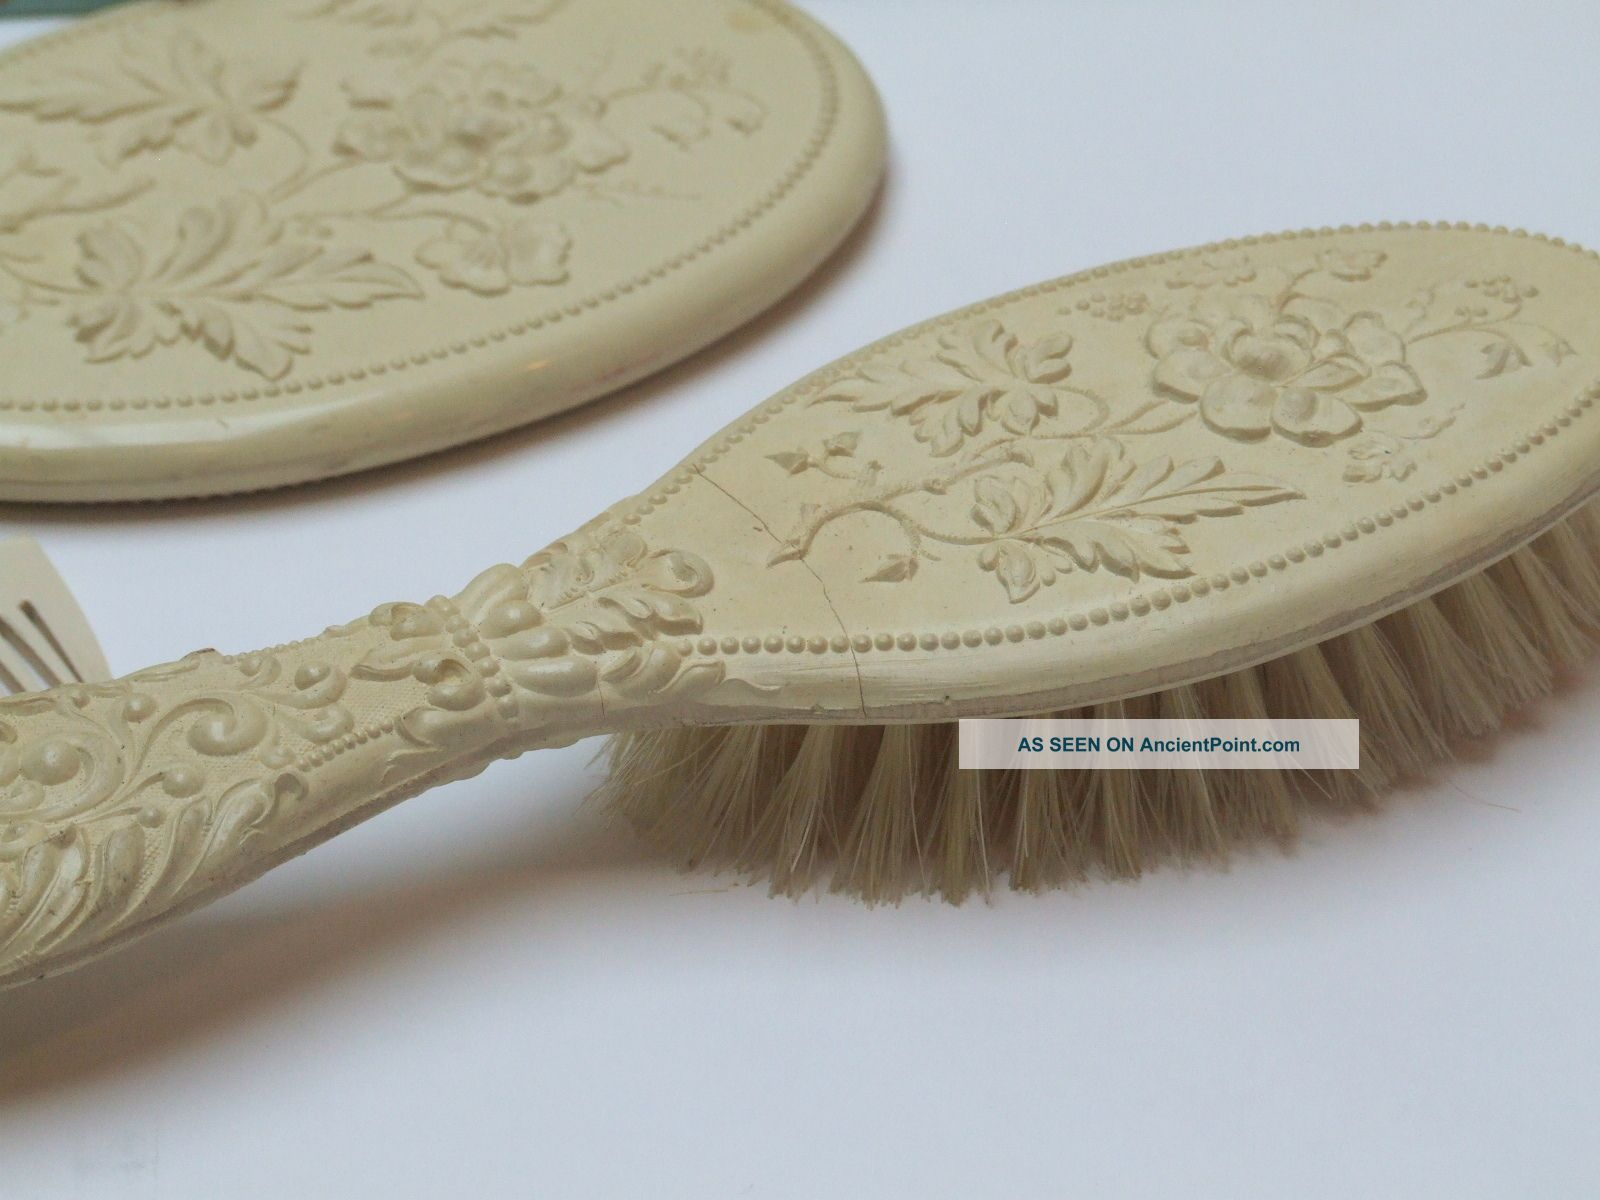 Antique Victorian Childs Celluloid Vanity Comb Brush Set Very Ornate Rare